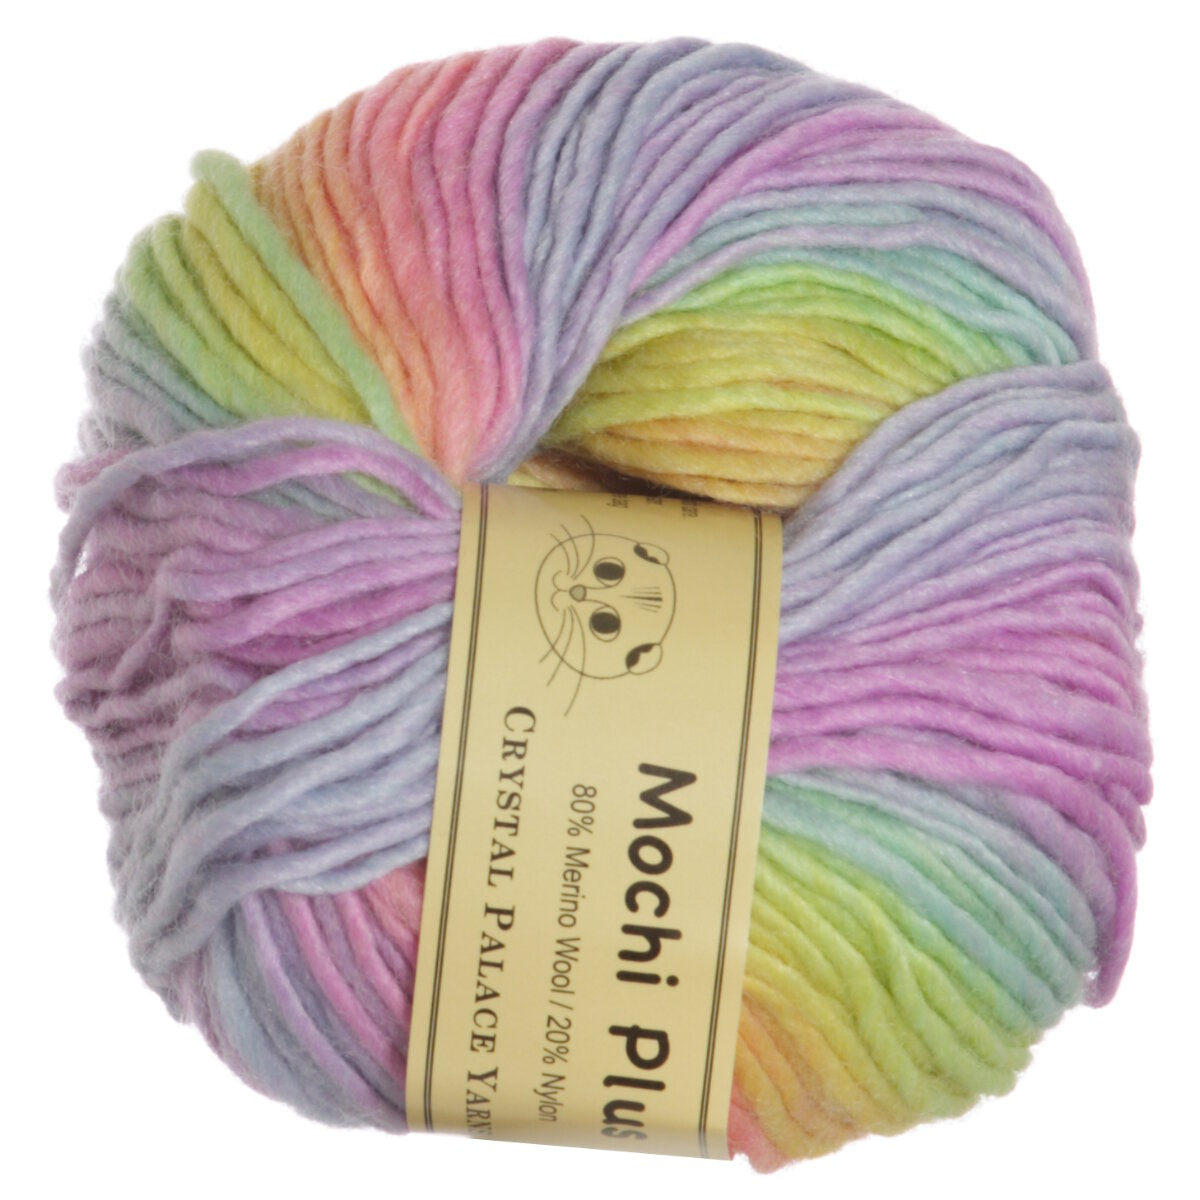 crystal palace mochi plus yarn 561 baby face 561 baby face shown image 1